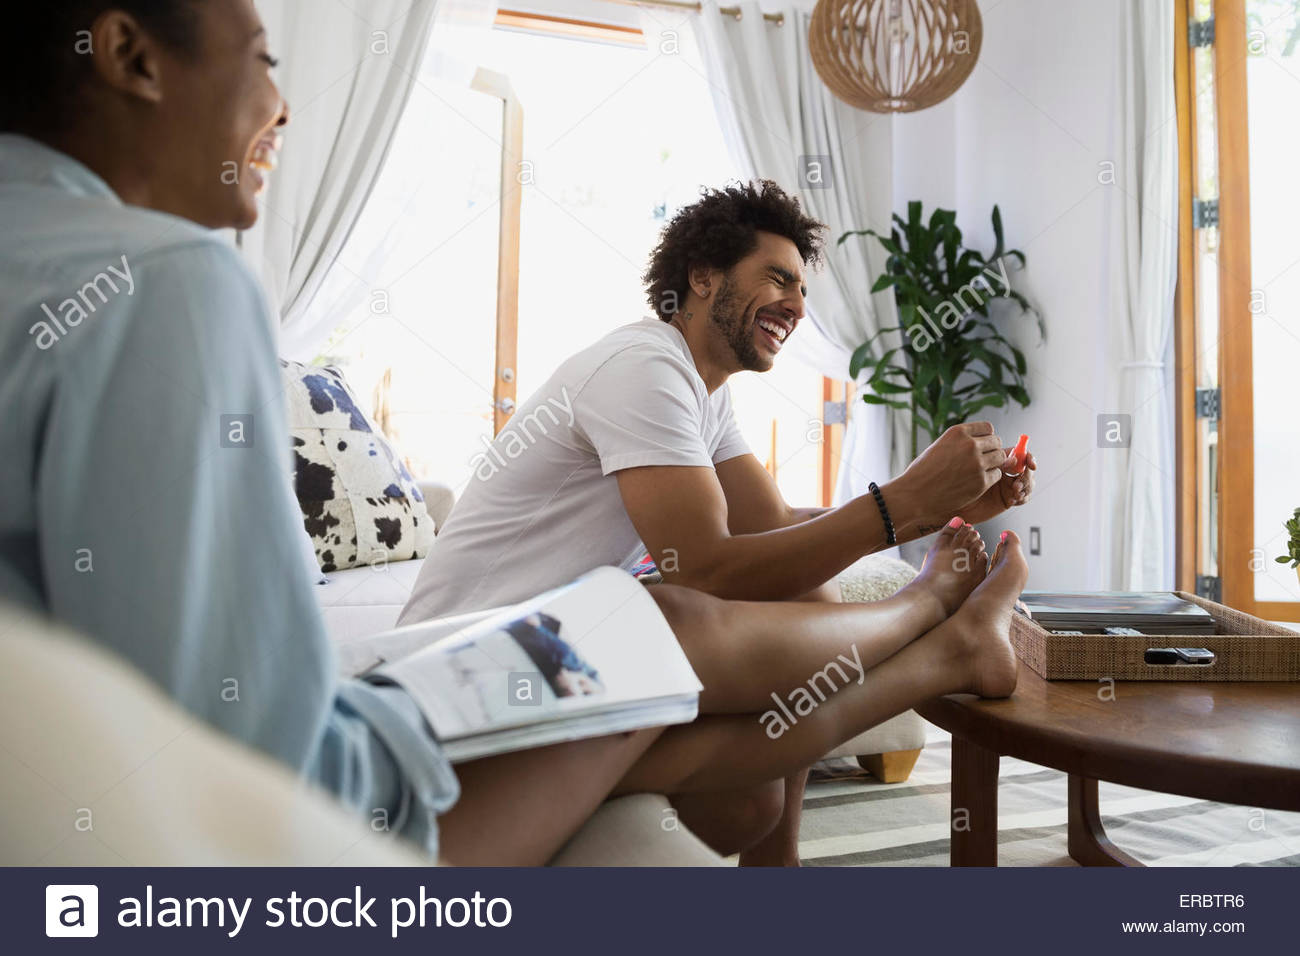 Laughing man giving girlfriend pedicure in living room - Stock Image